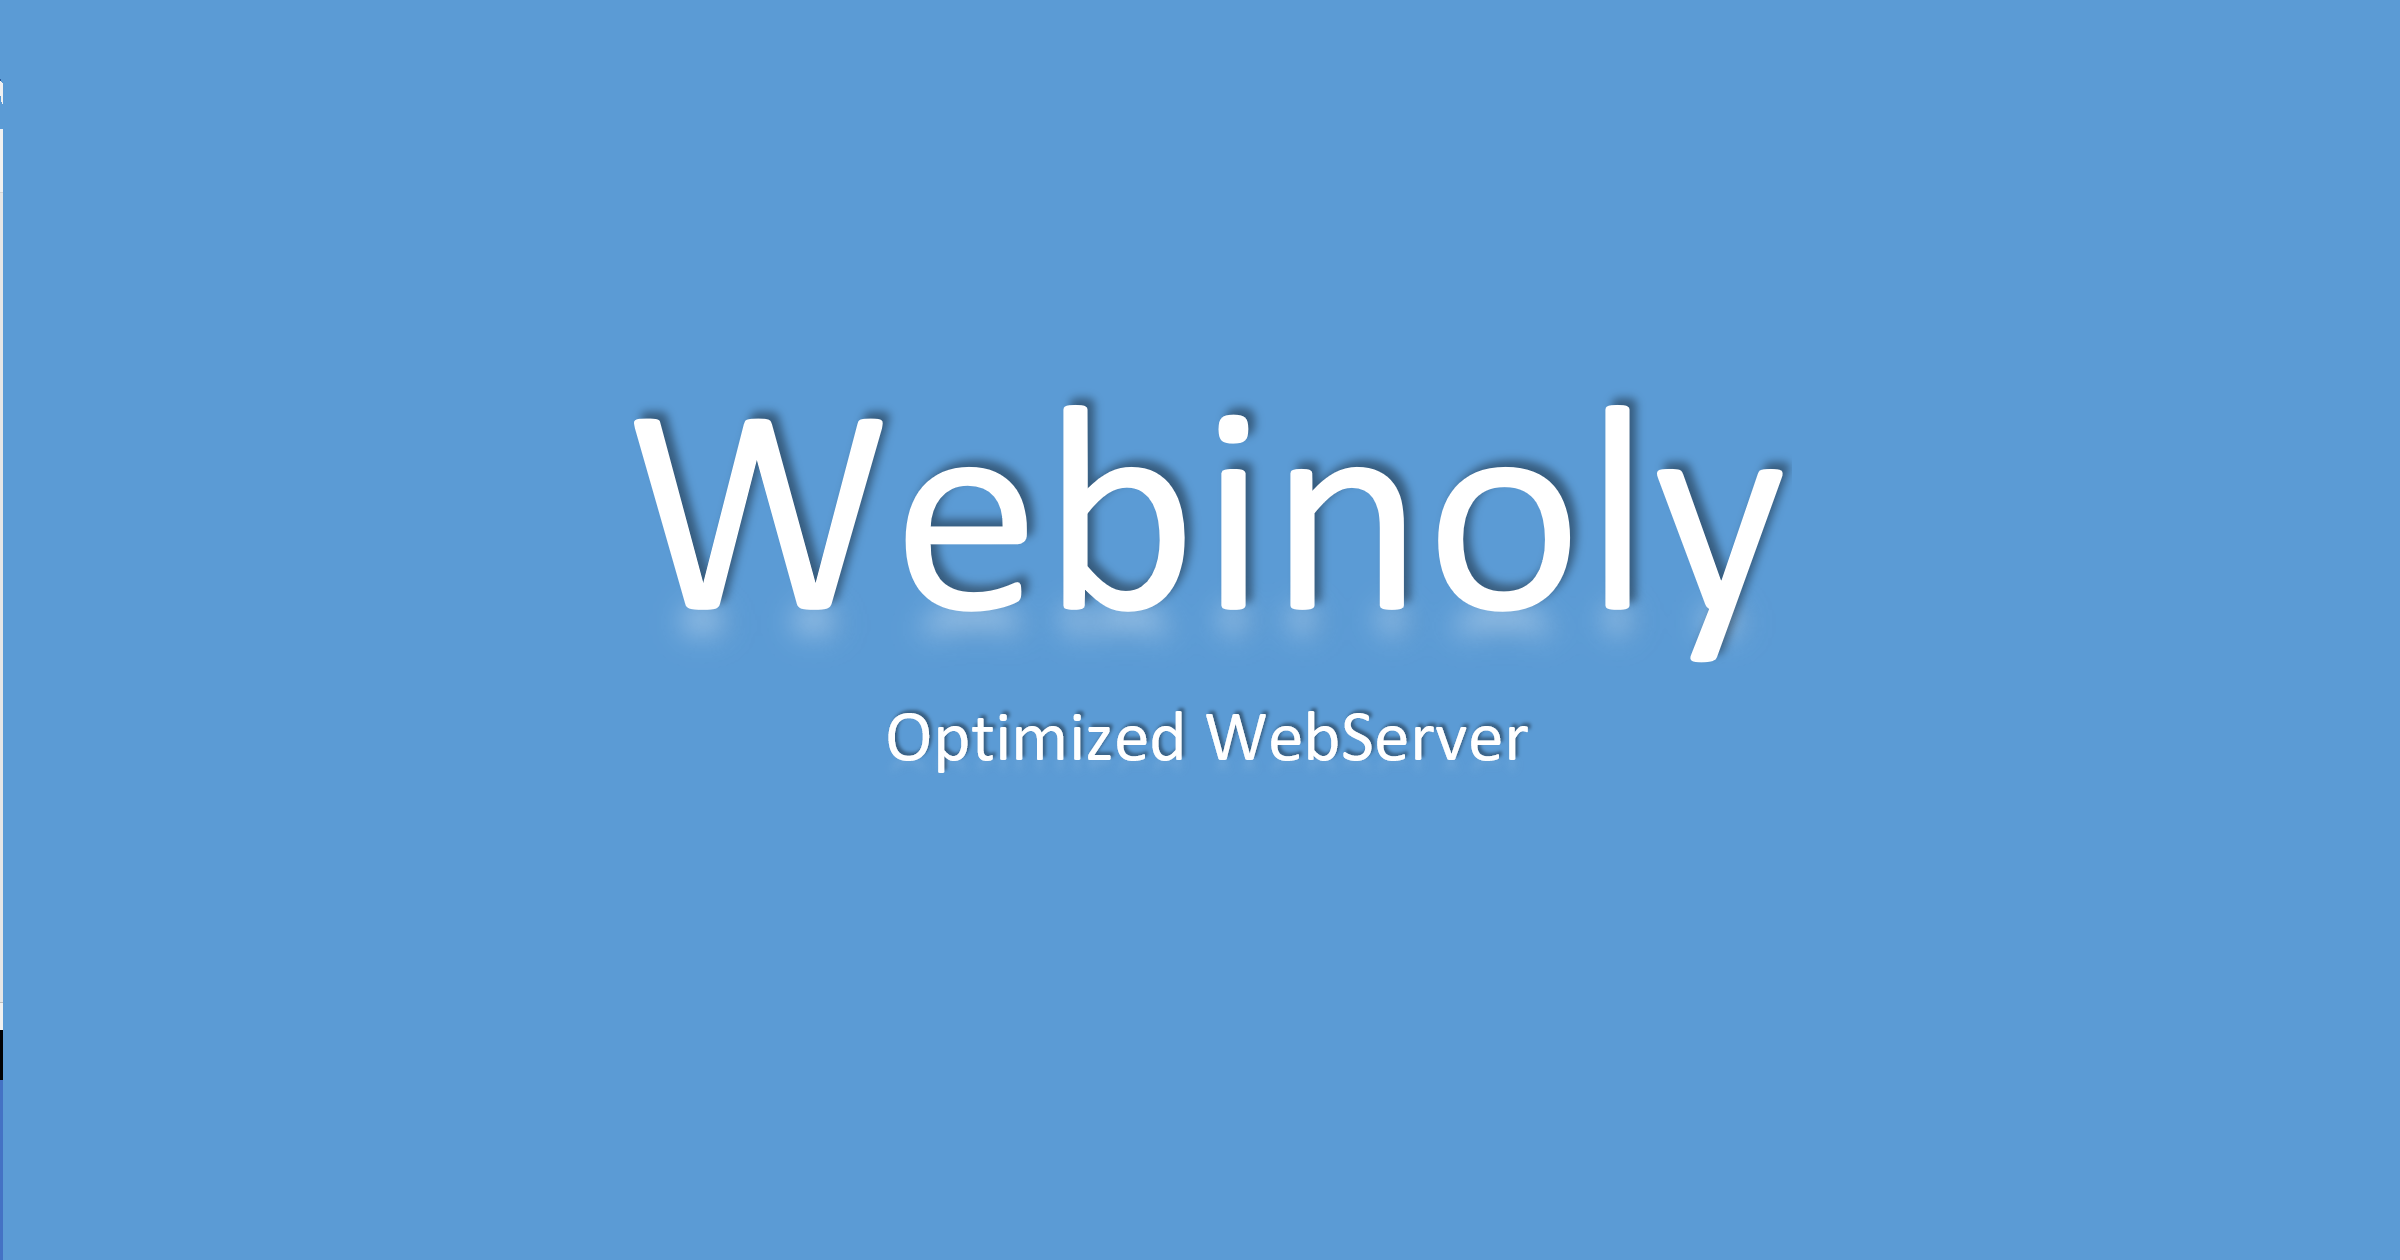 Manage and configure your Web Server with Webinoly